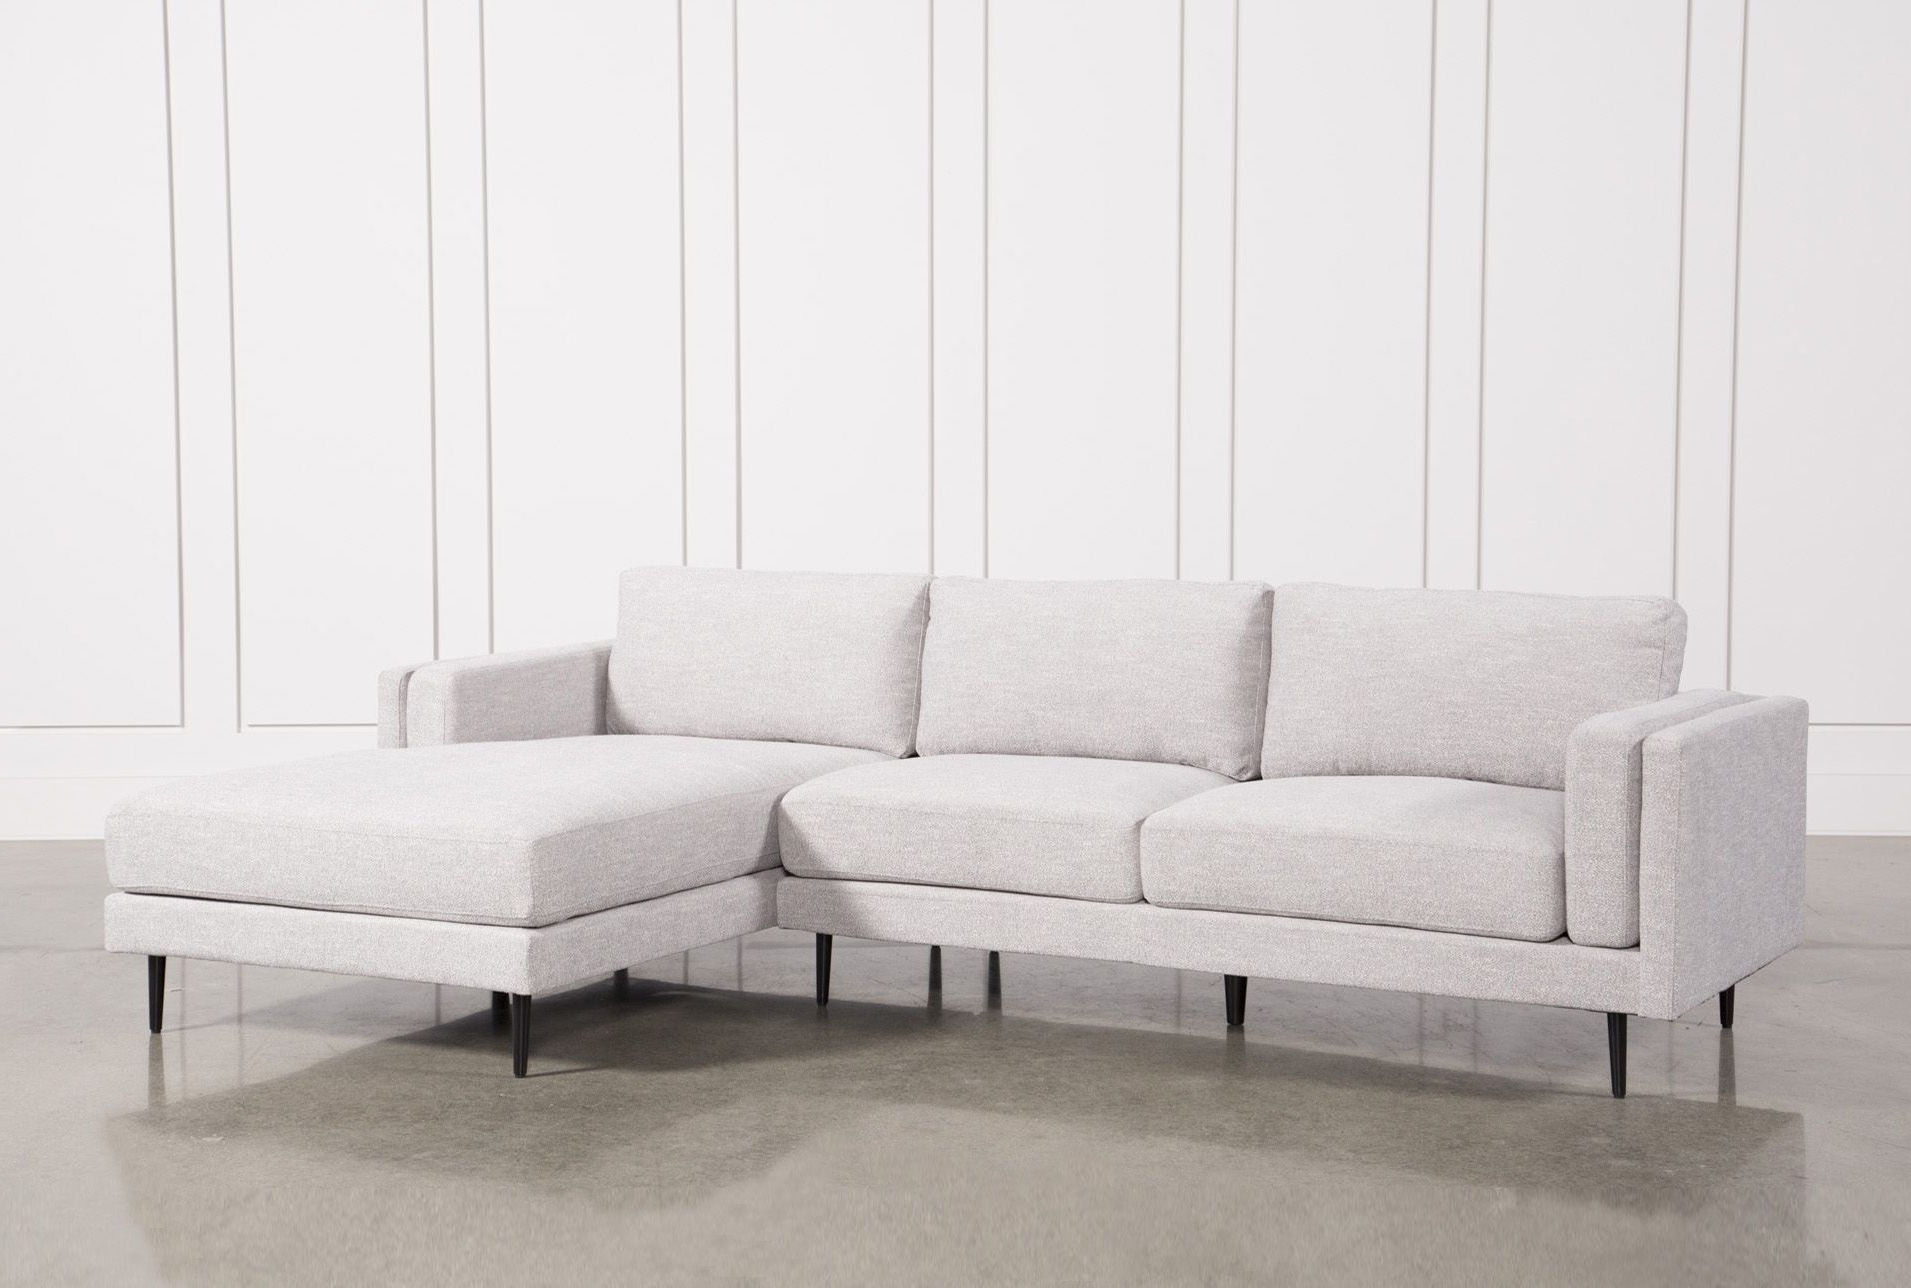 Trendy 2Pc Crowningshield Contemporary Chaise Sofas Light Gray In Aquarius Light Grey 2 Piece Sectional W/Raf Chaise, Sofas (View 2 of 25)